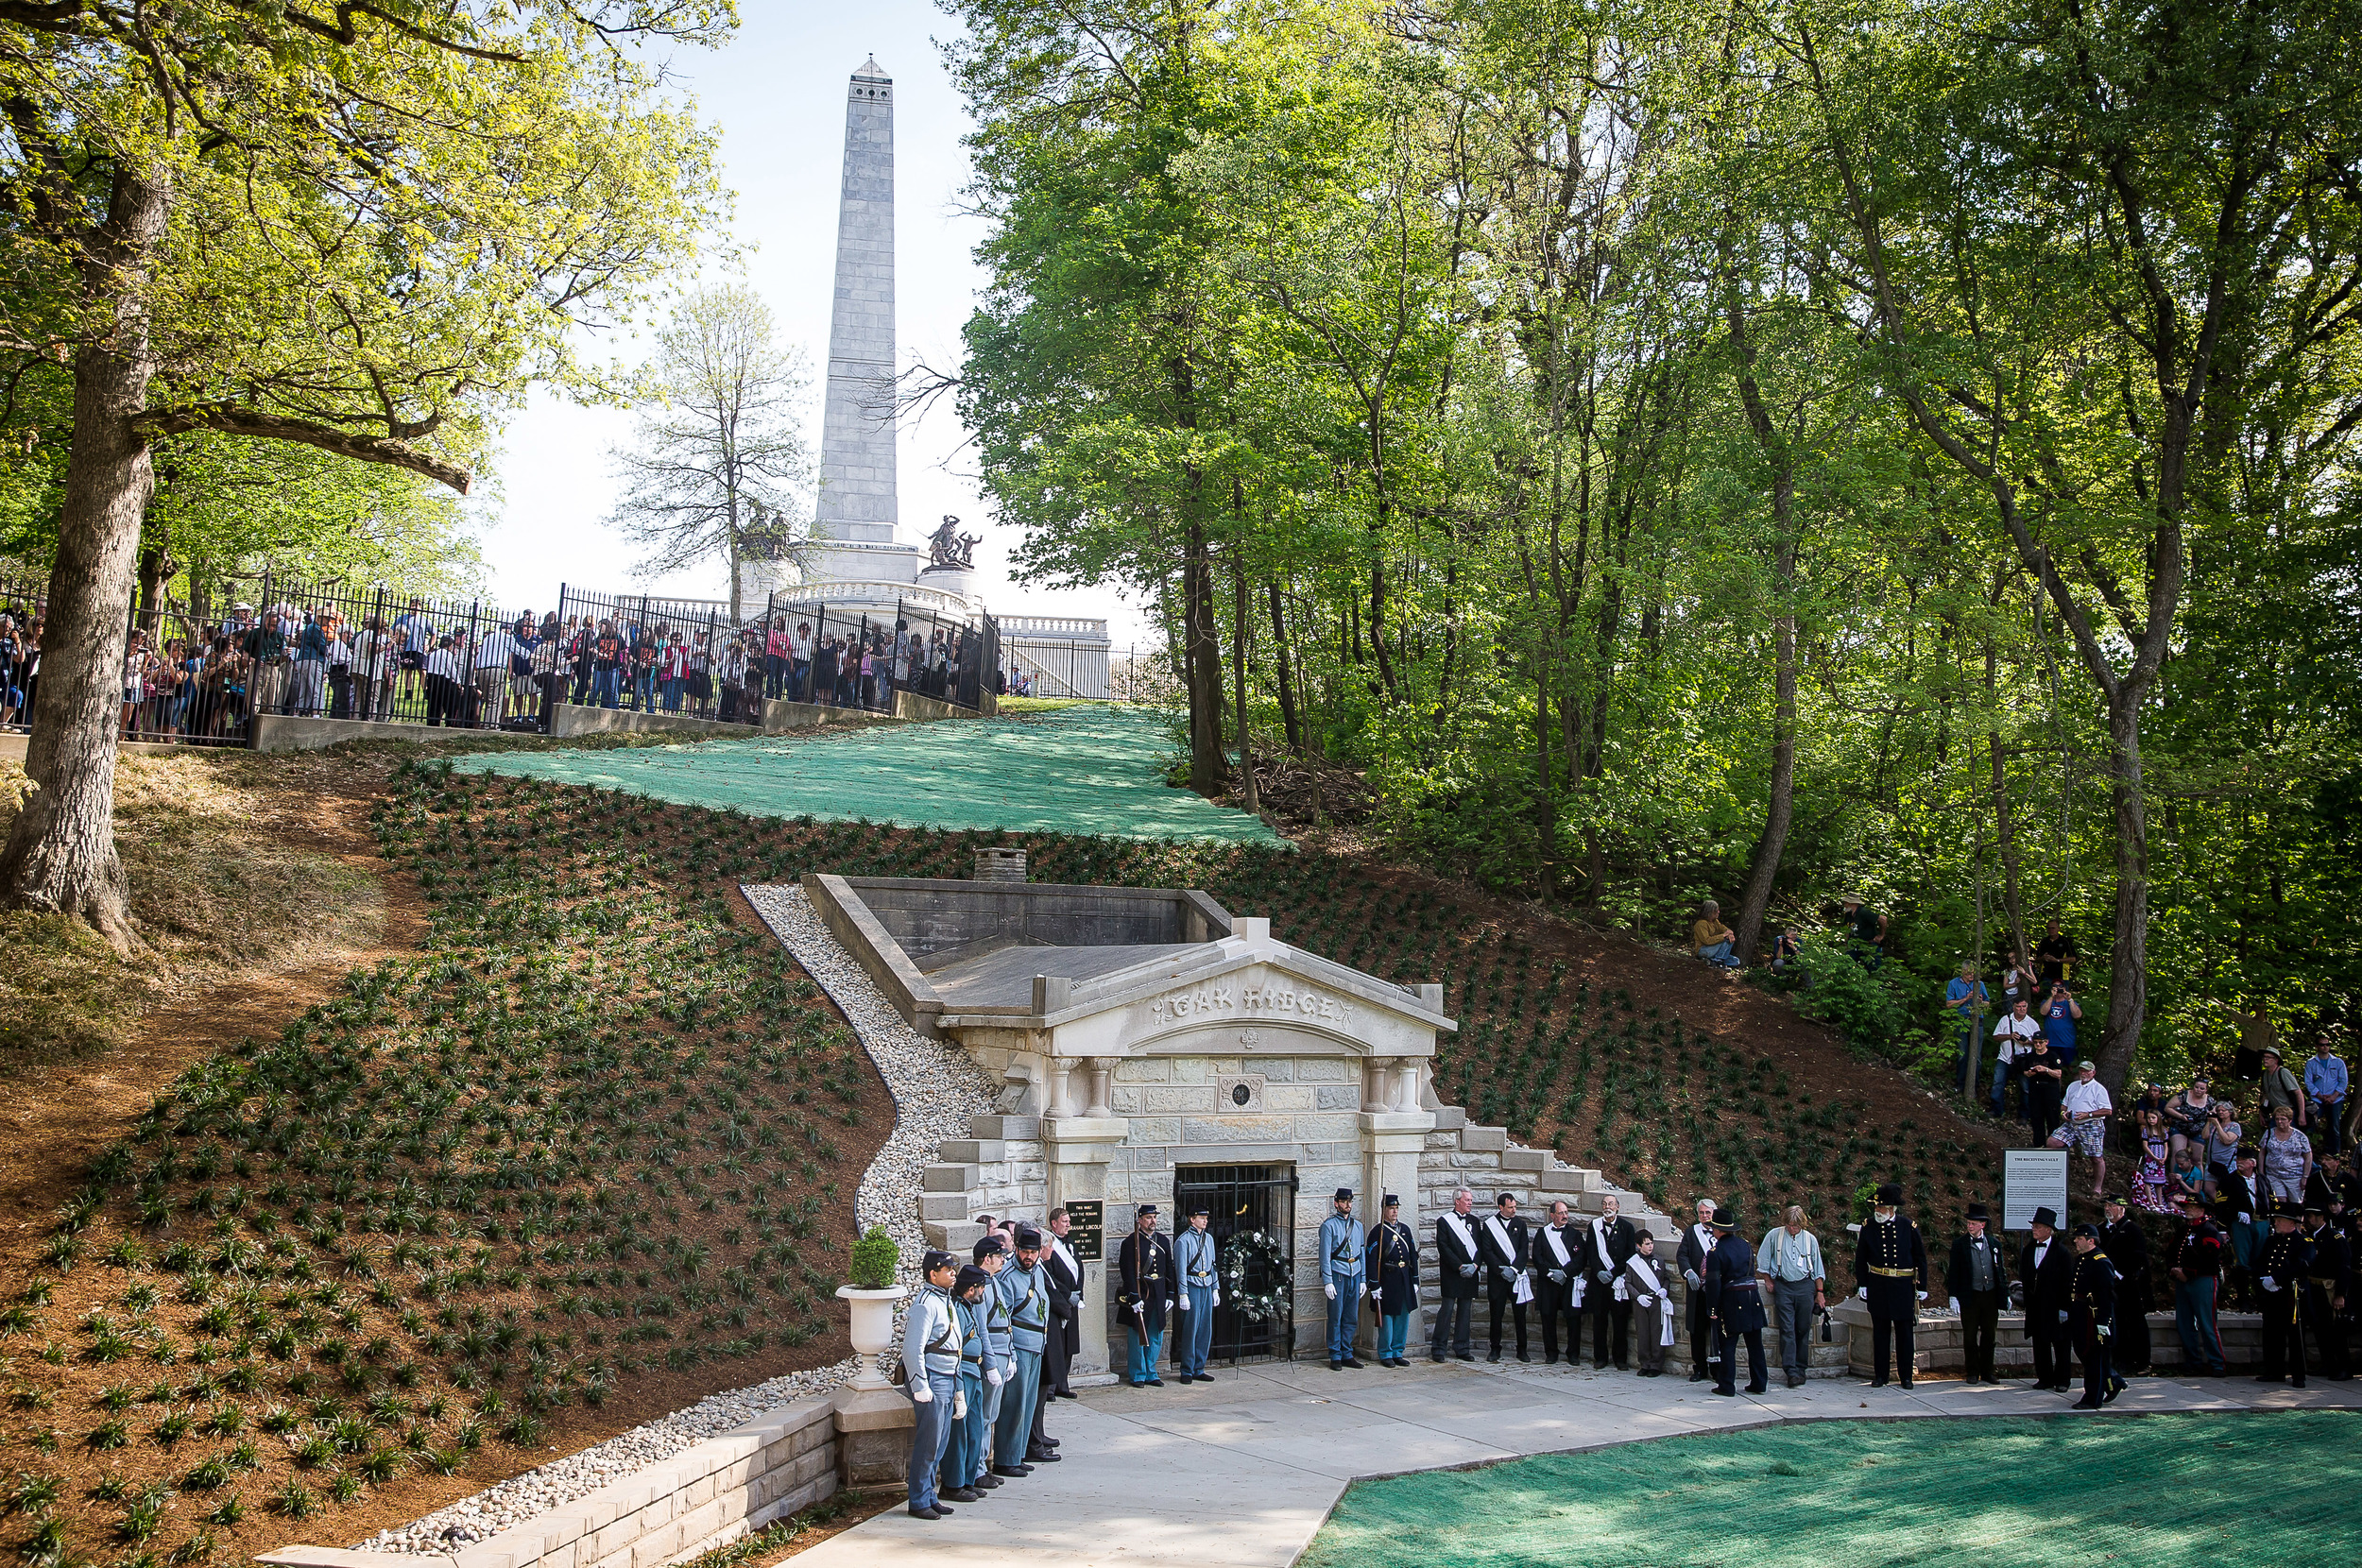 Pallbearers and members of the Veterans Reserve Corps stand at attention in front of the original receiving vault where Lincoln's casket was placed at Oak Ridge Cemetery during the 2015 Lincoln Funeral Re-enactment, Sunday, May 3, 2015, in Springfield, Ill. Justin L. Fowler/The State Journal-Register